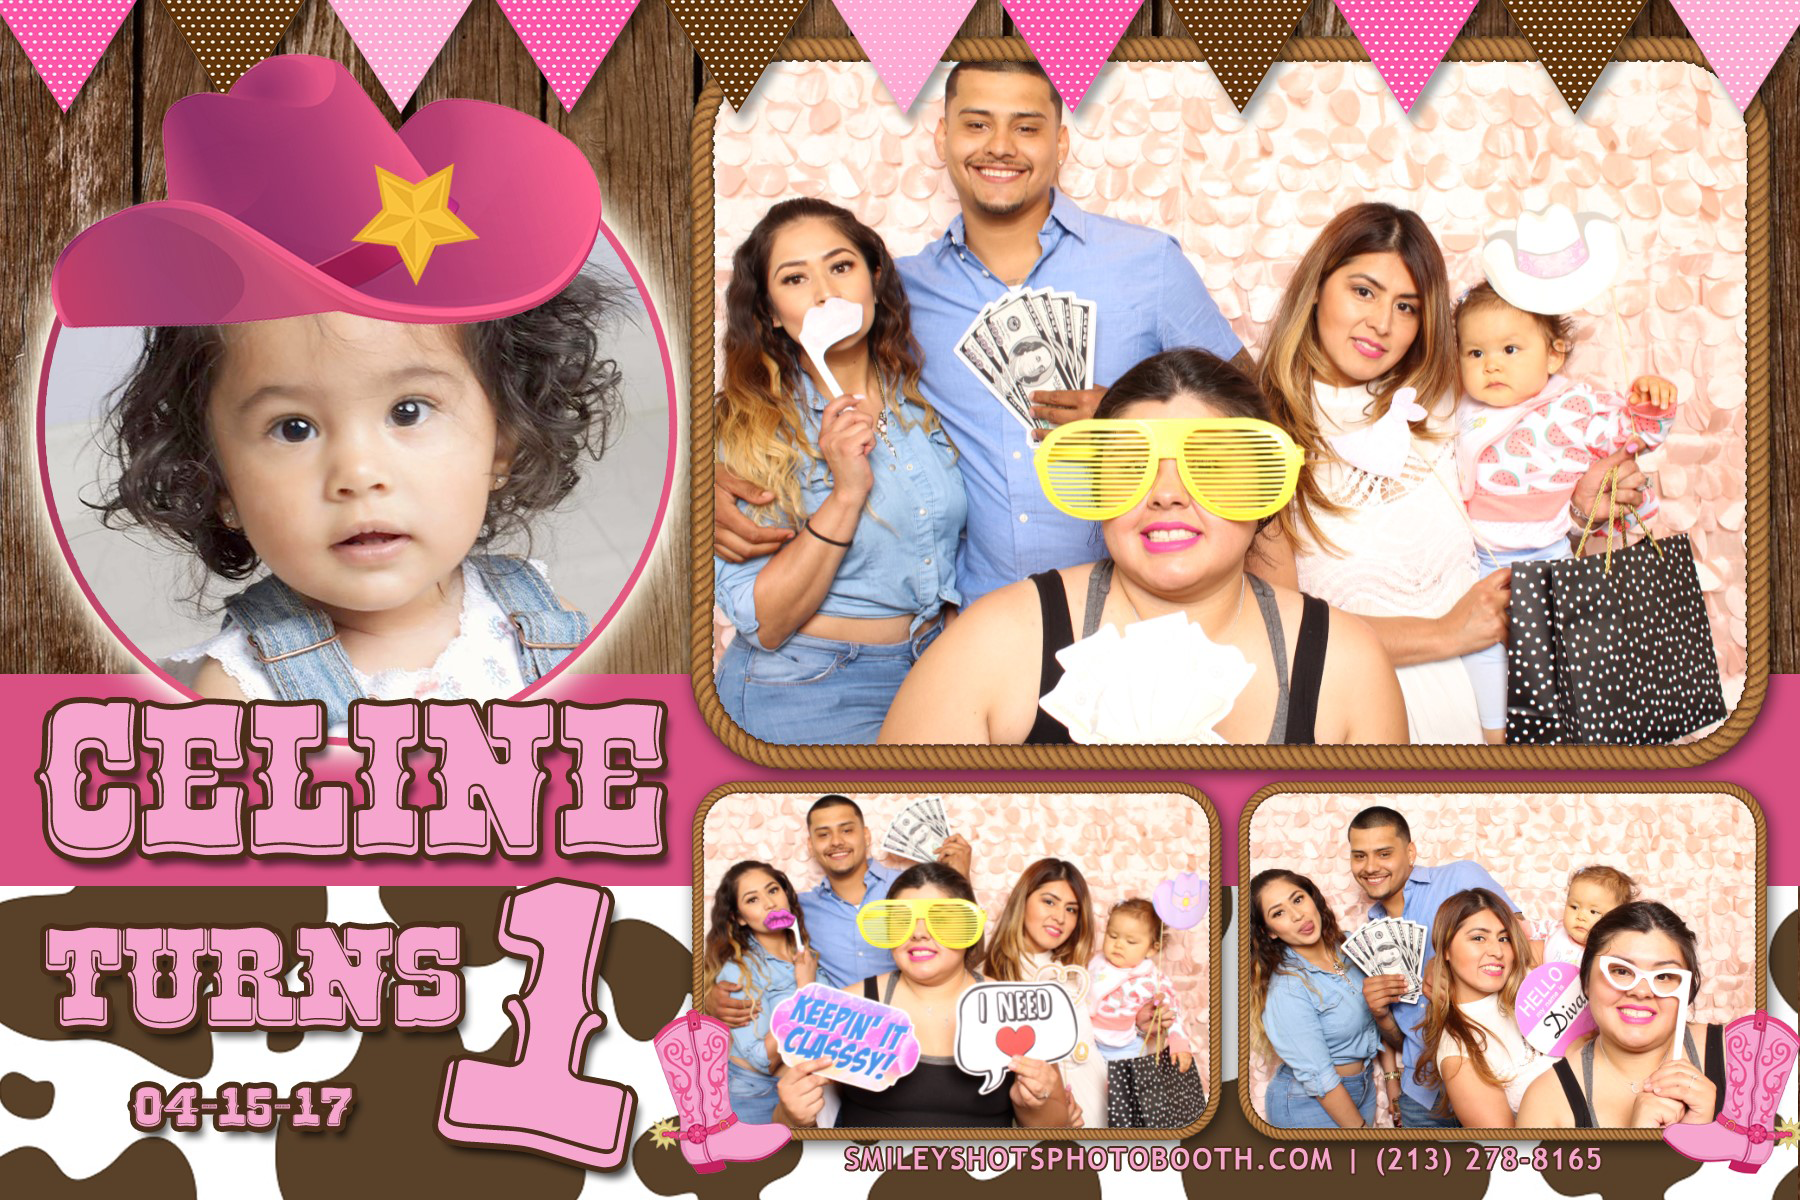 Celine turns 1 Smiley Shots Photo Booth Photobooth (31).png